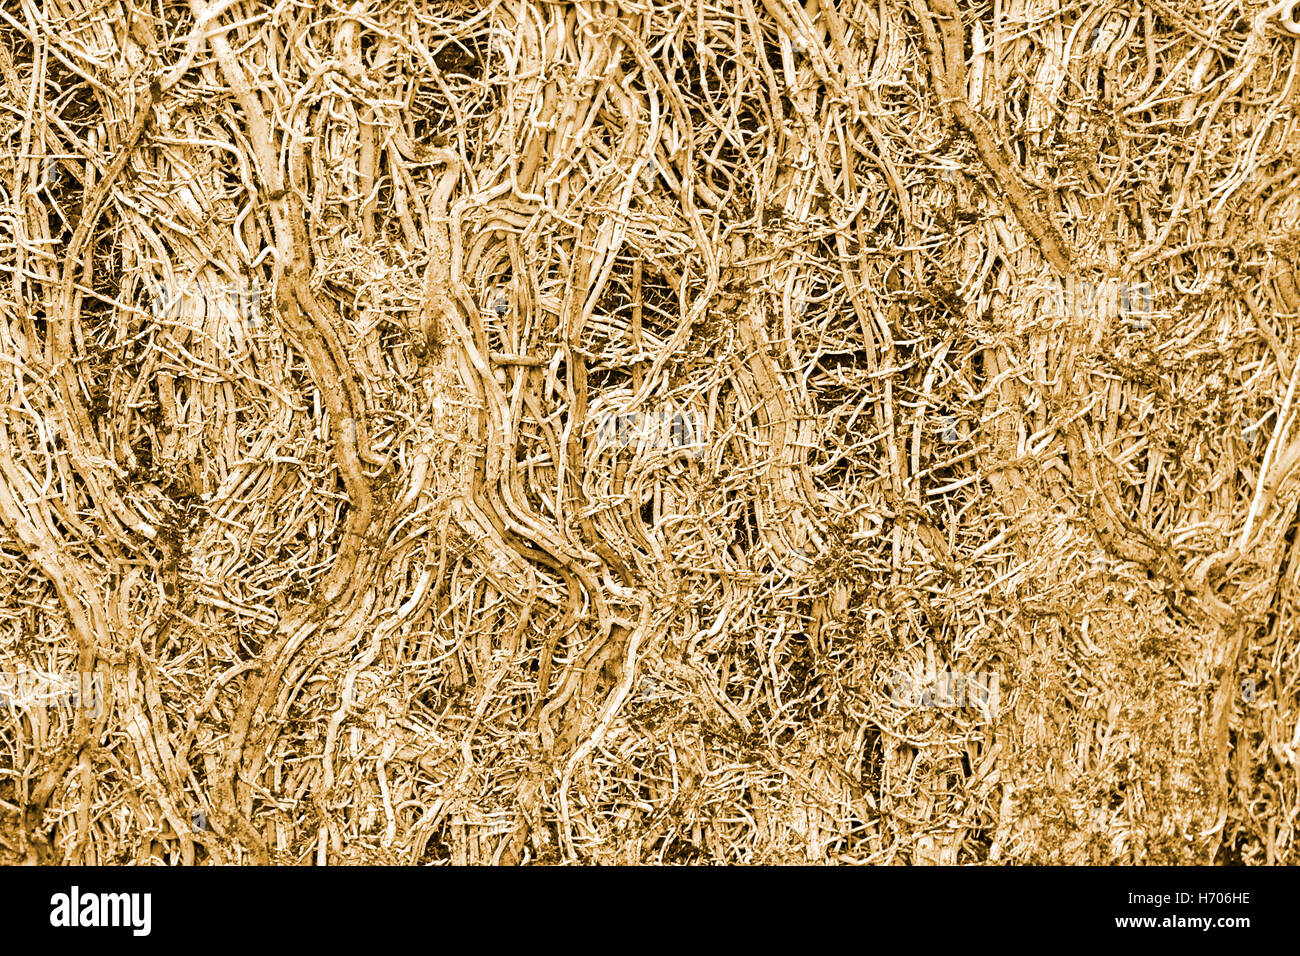 Abstract close up image of tight tangled cluster of roots of a pot bound Bamboo plant after pot removal concept - Stock Image